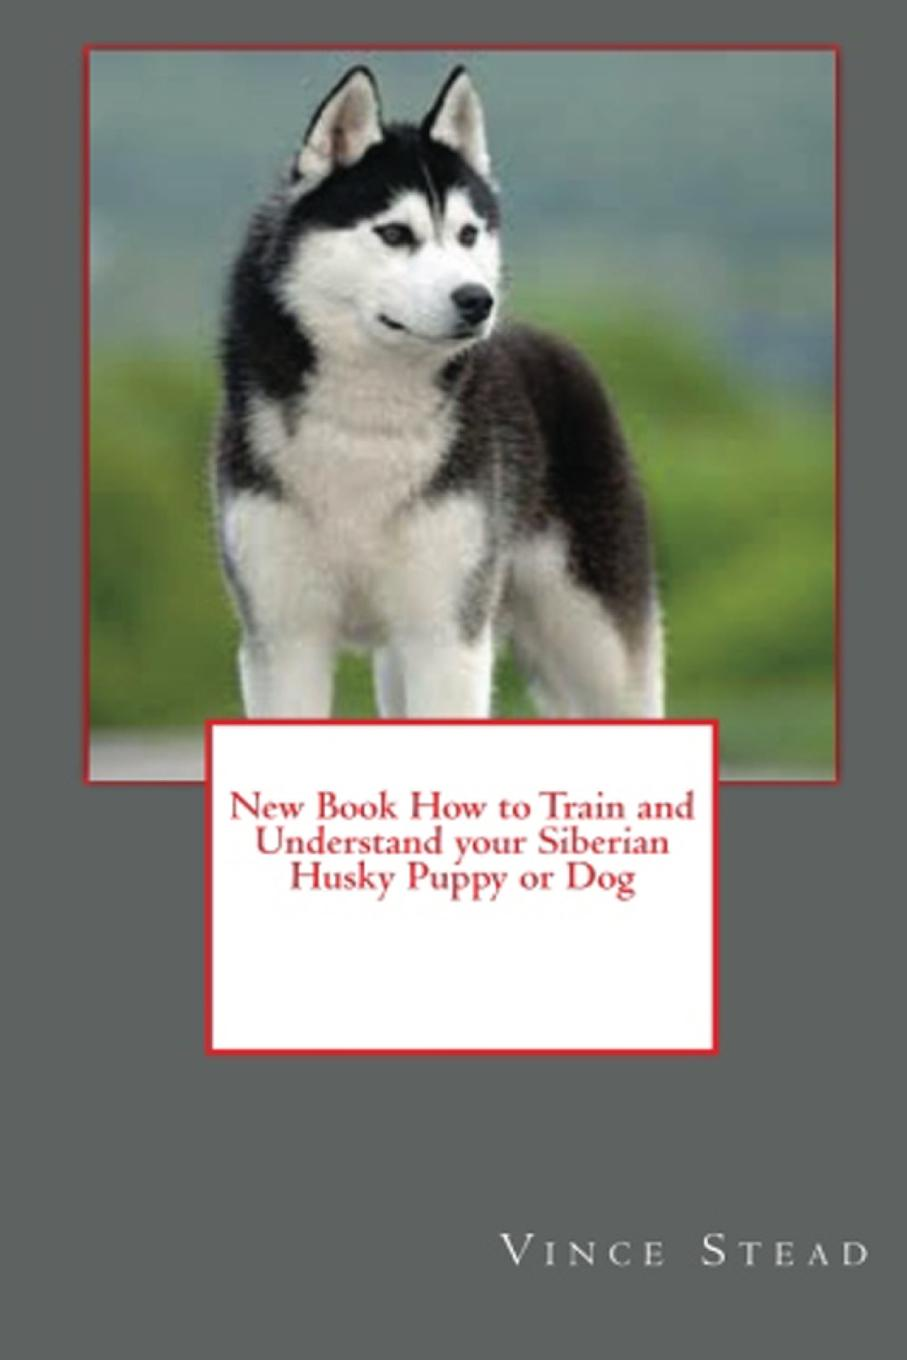 Vince Stead New Book How to Train and Understand your Siberian Husky Puppy or Dog vince stead how to understand and train your golden retriever puppy or dog